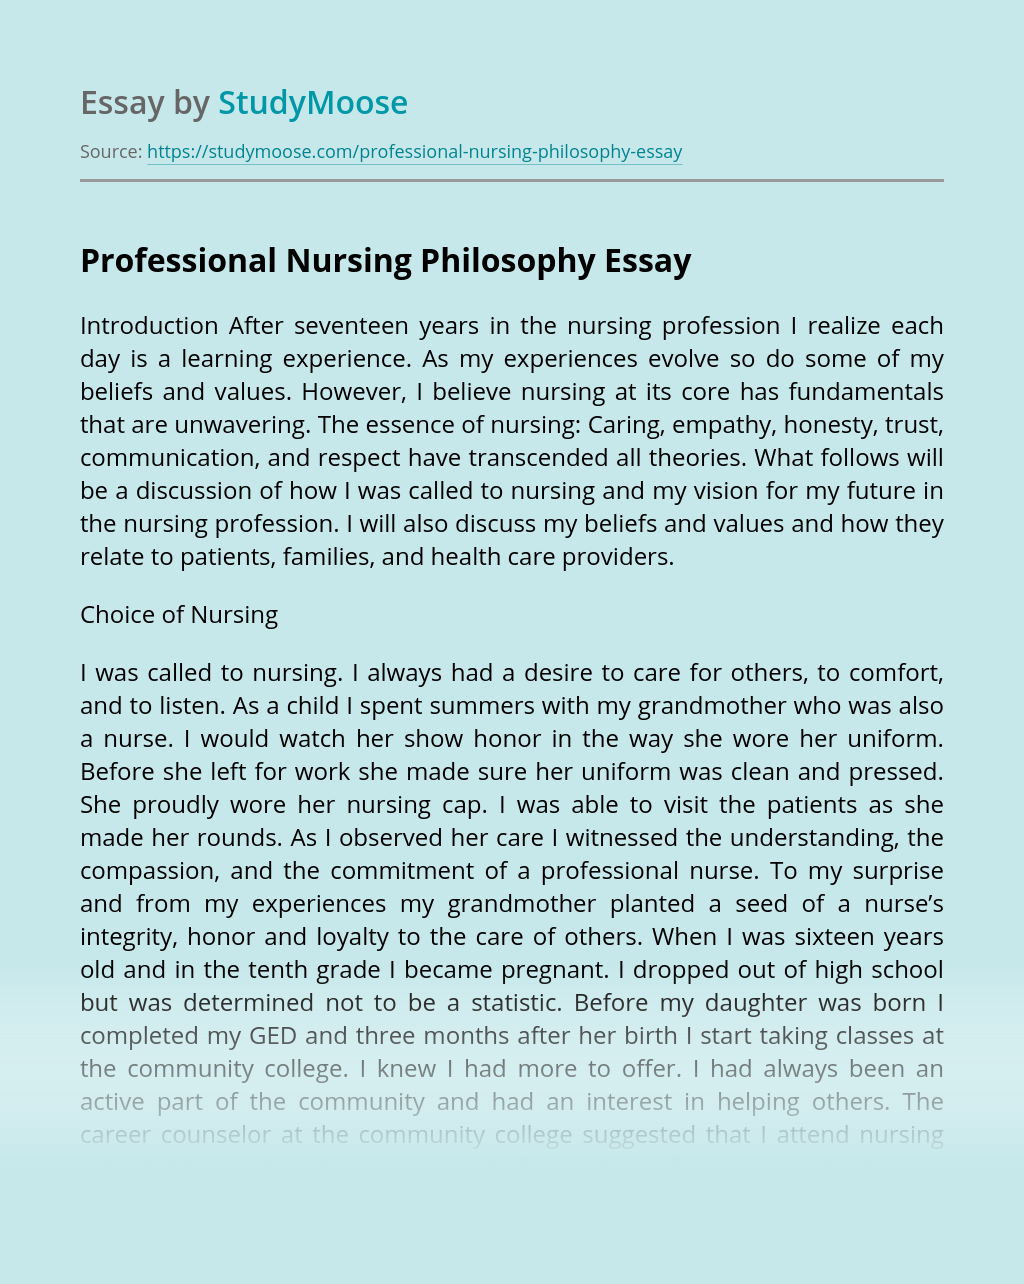 Professional Nursing Philosophy